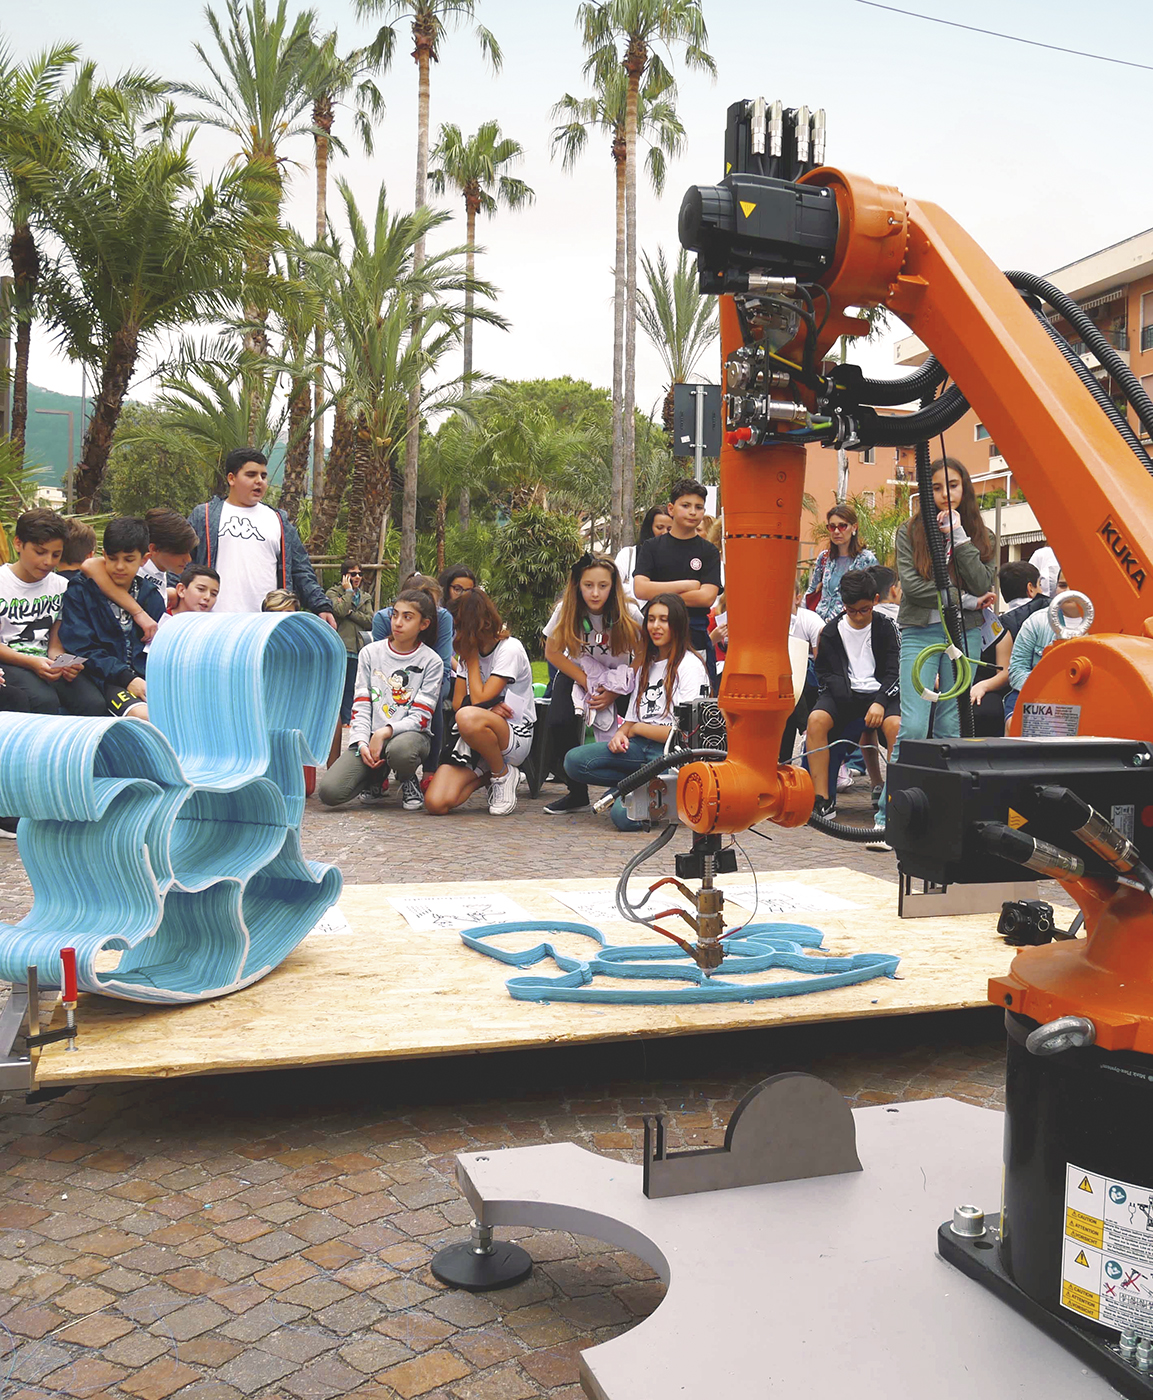 Caracol AM event in Sorrento, live 3D printing